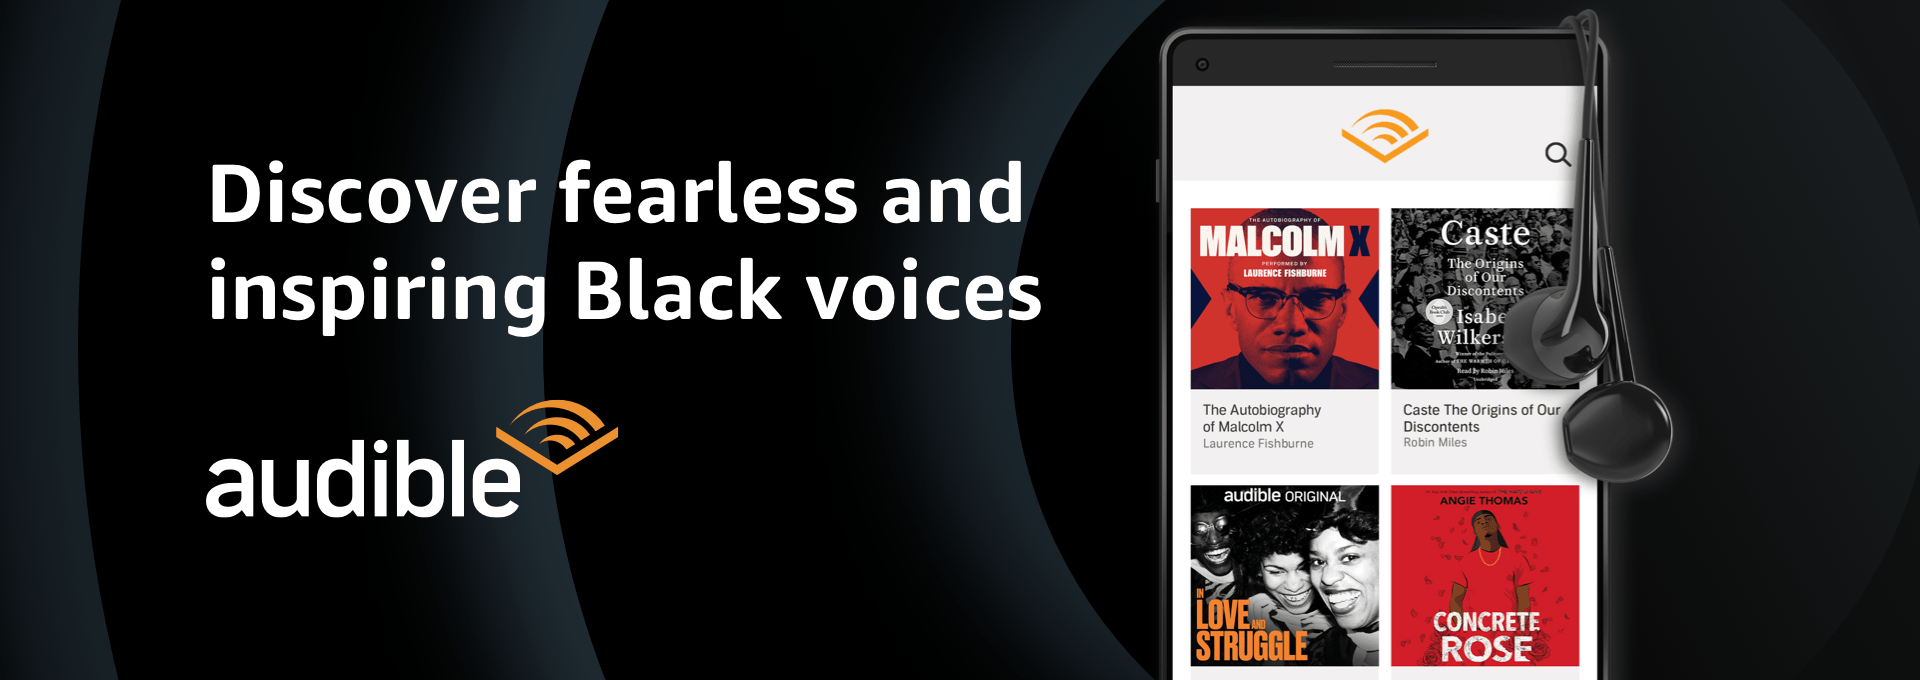 Discover fearless and inspiring Black voices on Audible